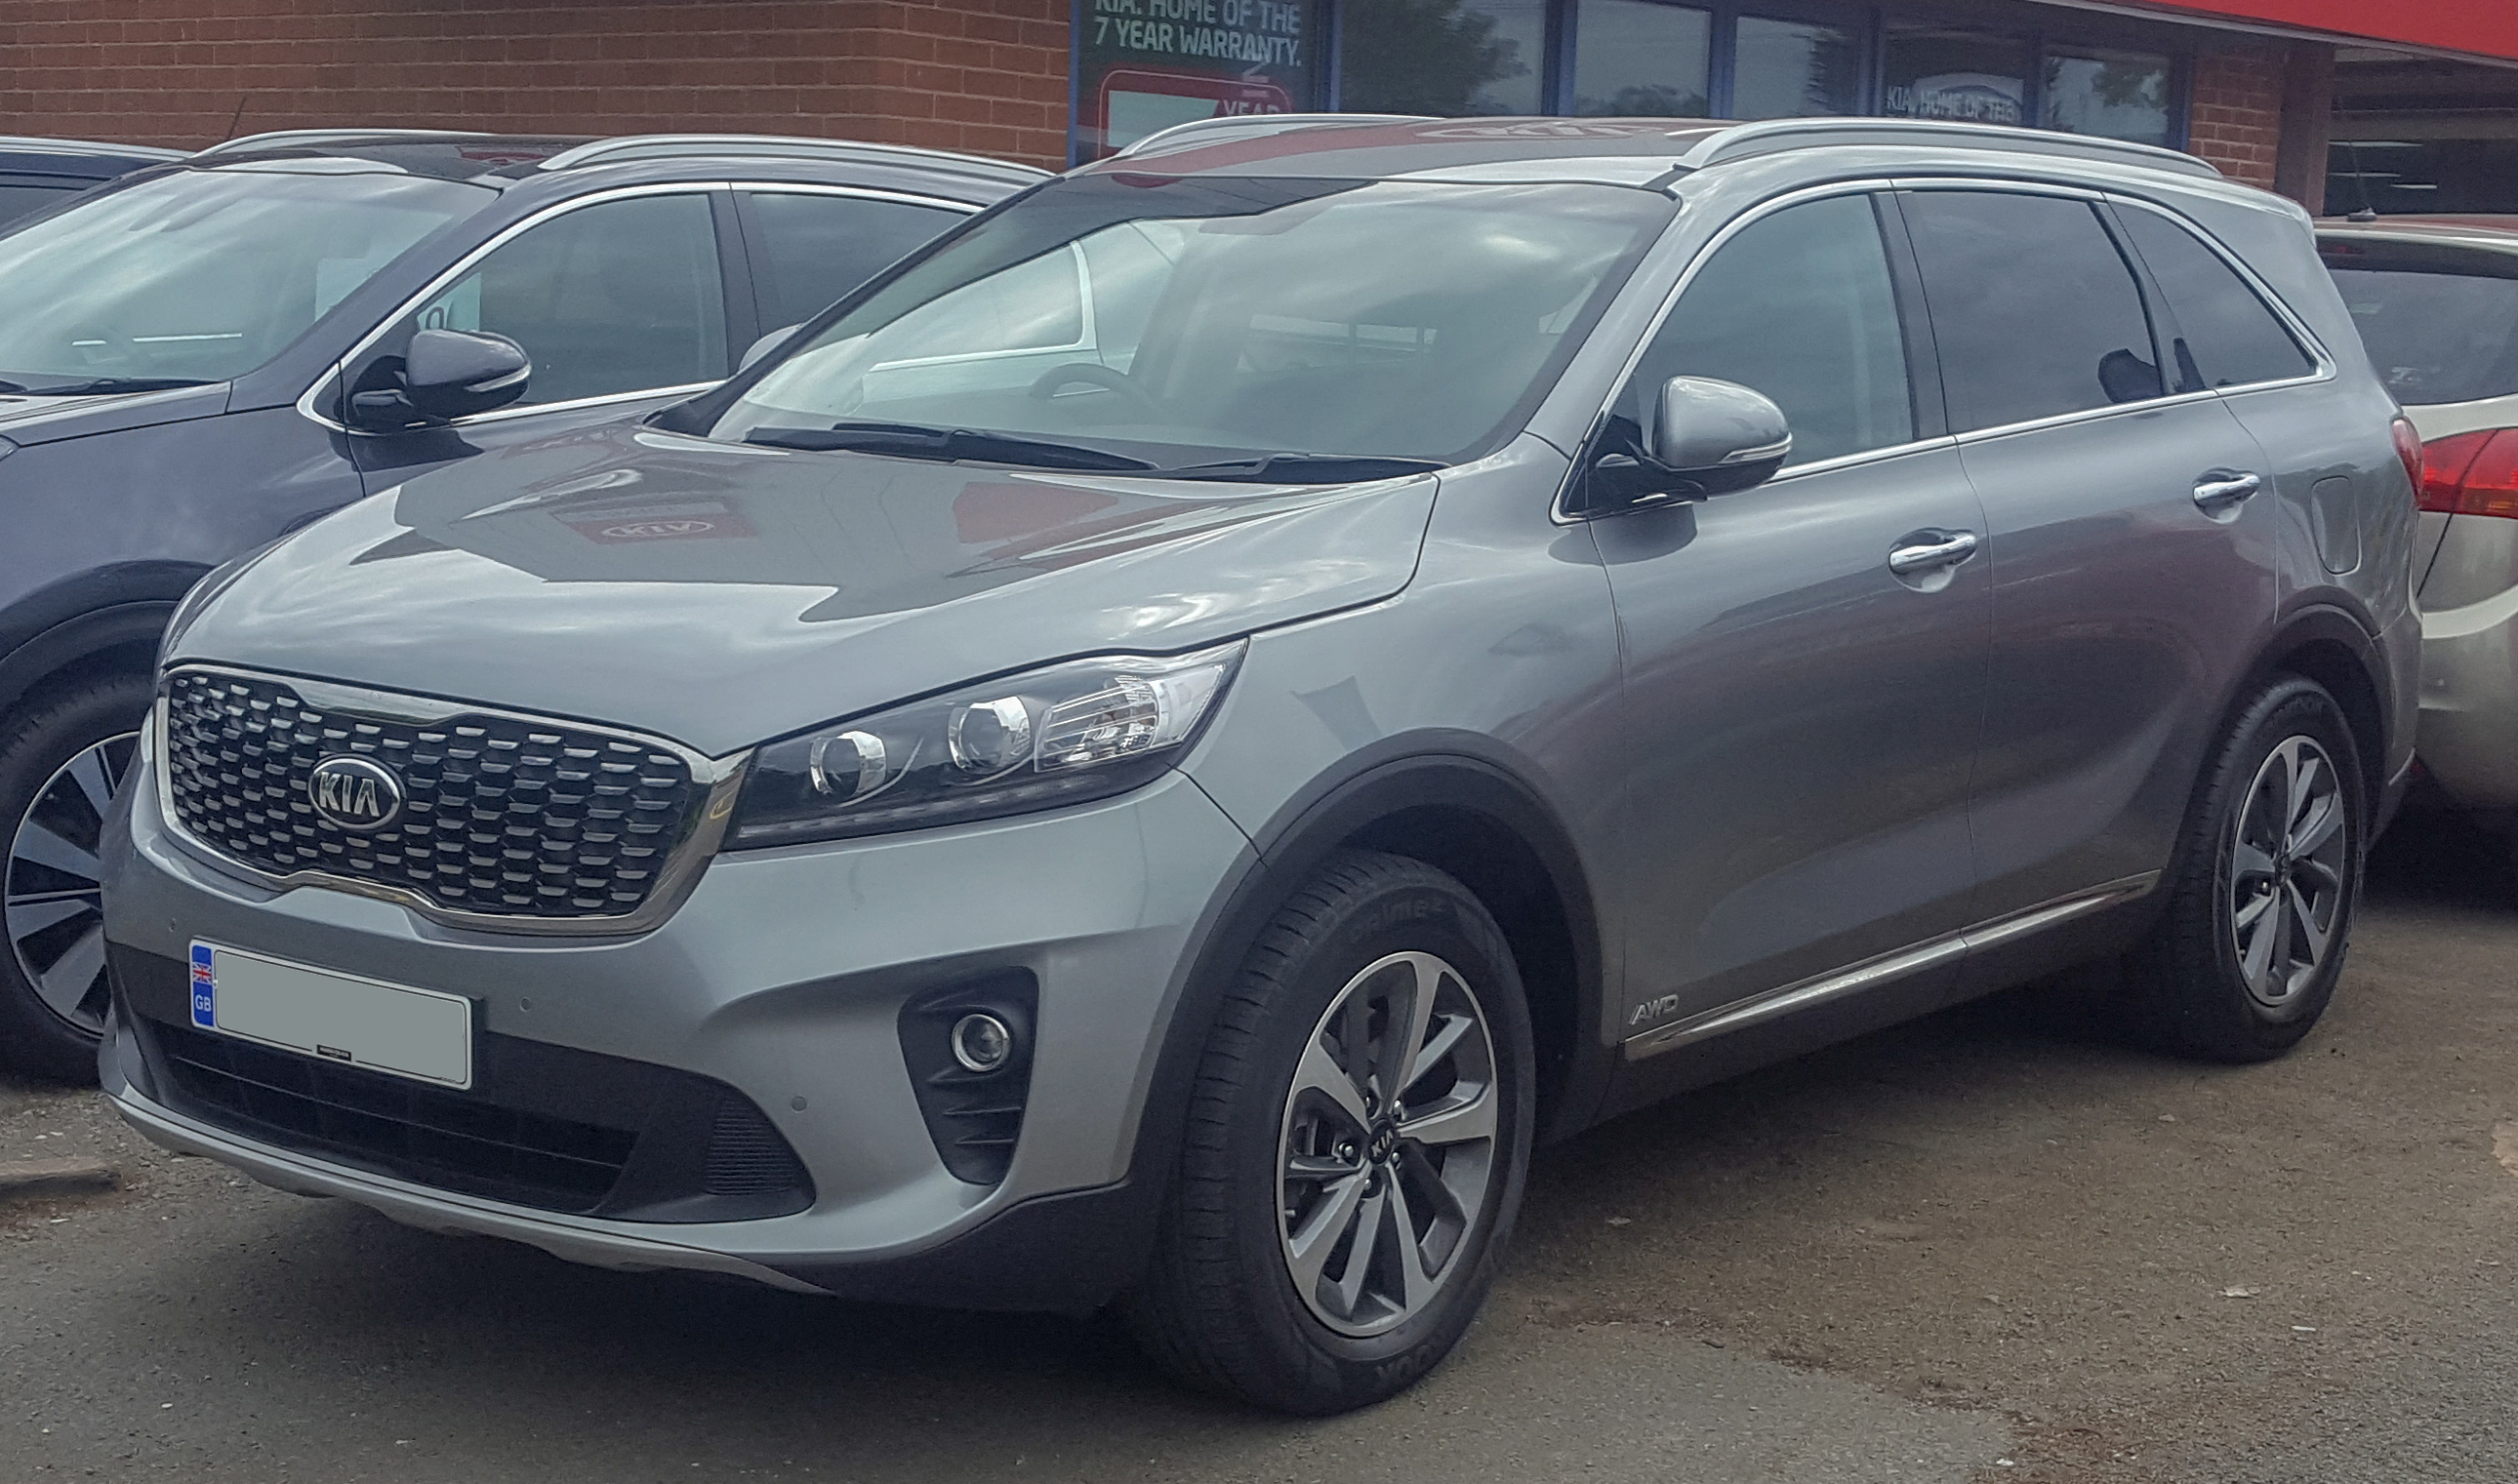 Kia Sorento - Wikipedia on ind map, nev map, gps map, mind map, bc map, se map, map map, home map, search map, de map, na map, microsoft map, cal map,